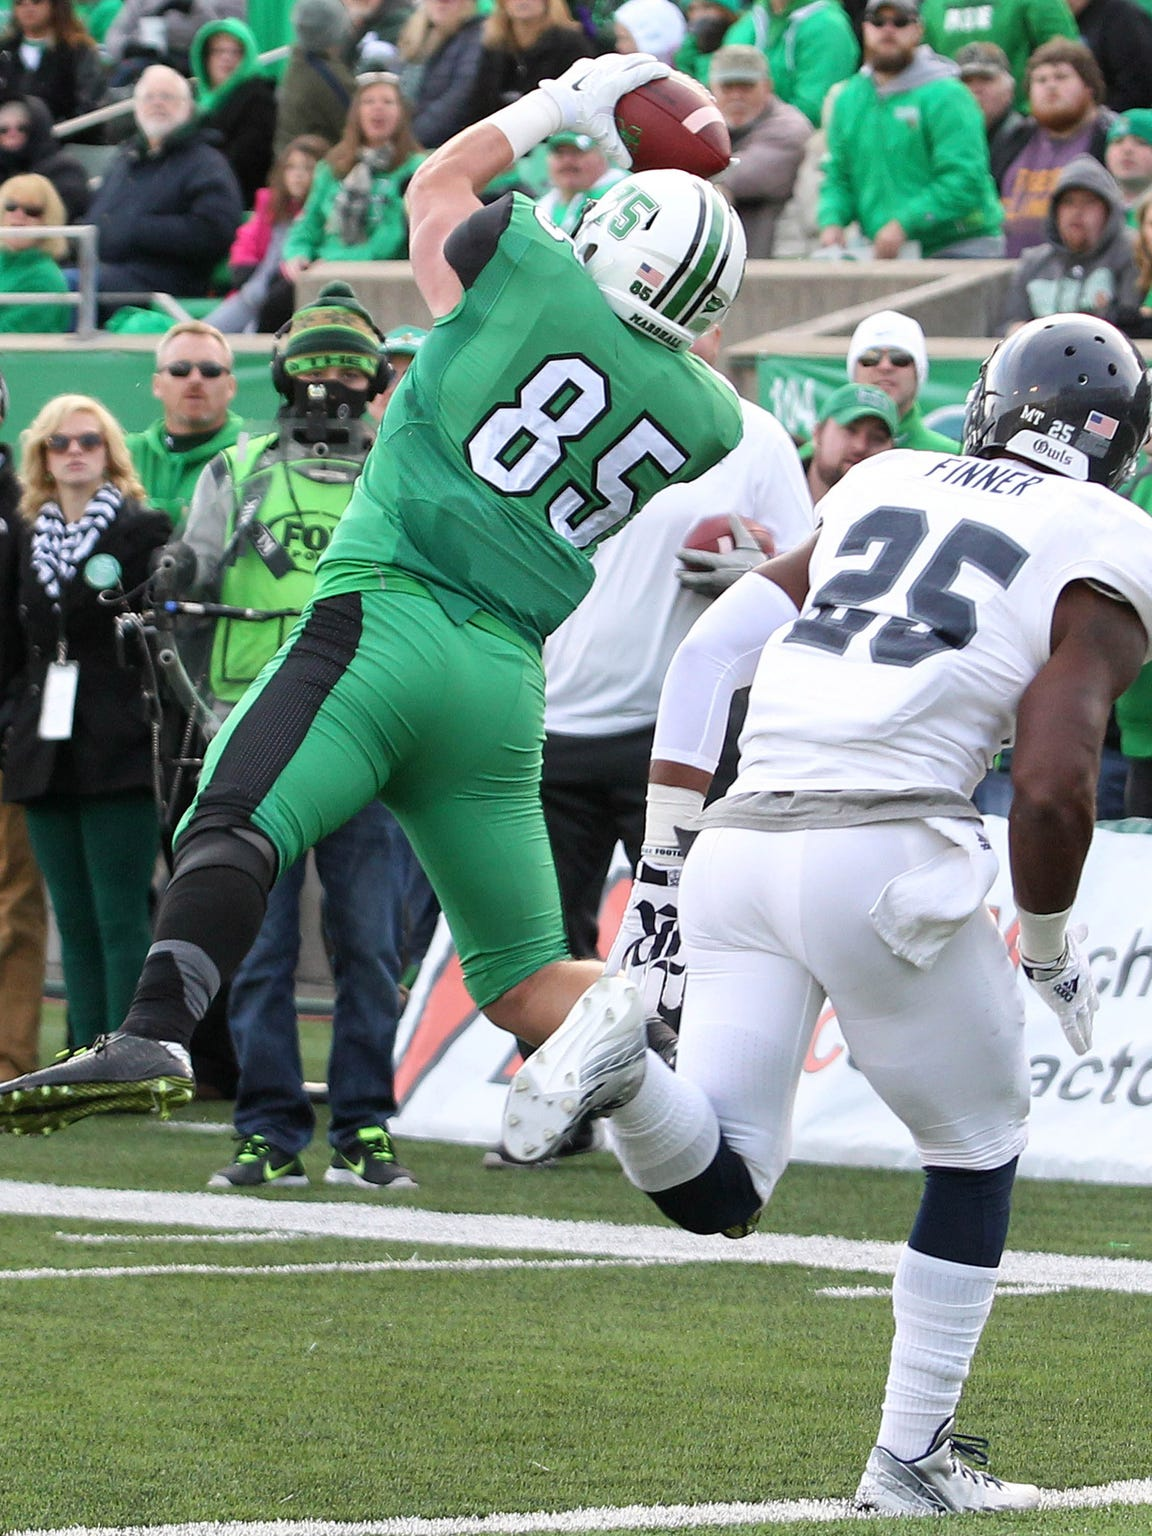 Marshall tight end Ryan Yurachek (85) is a key option for the Herd as it competes for a C-USA East title.